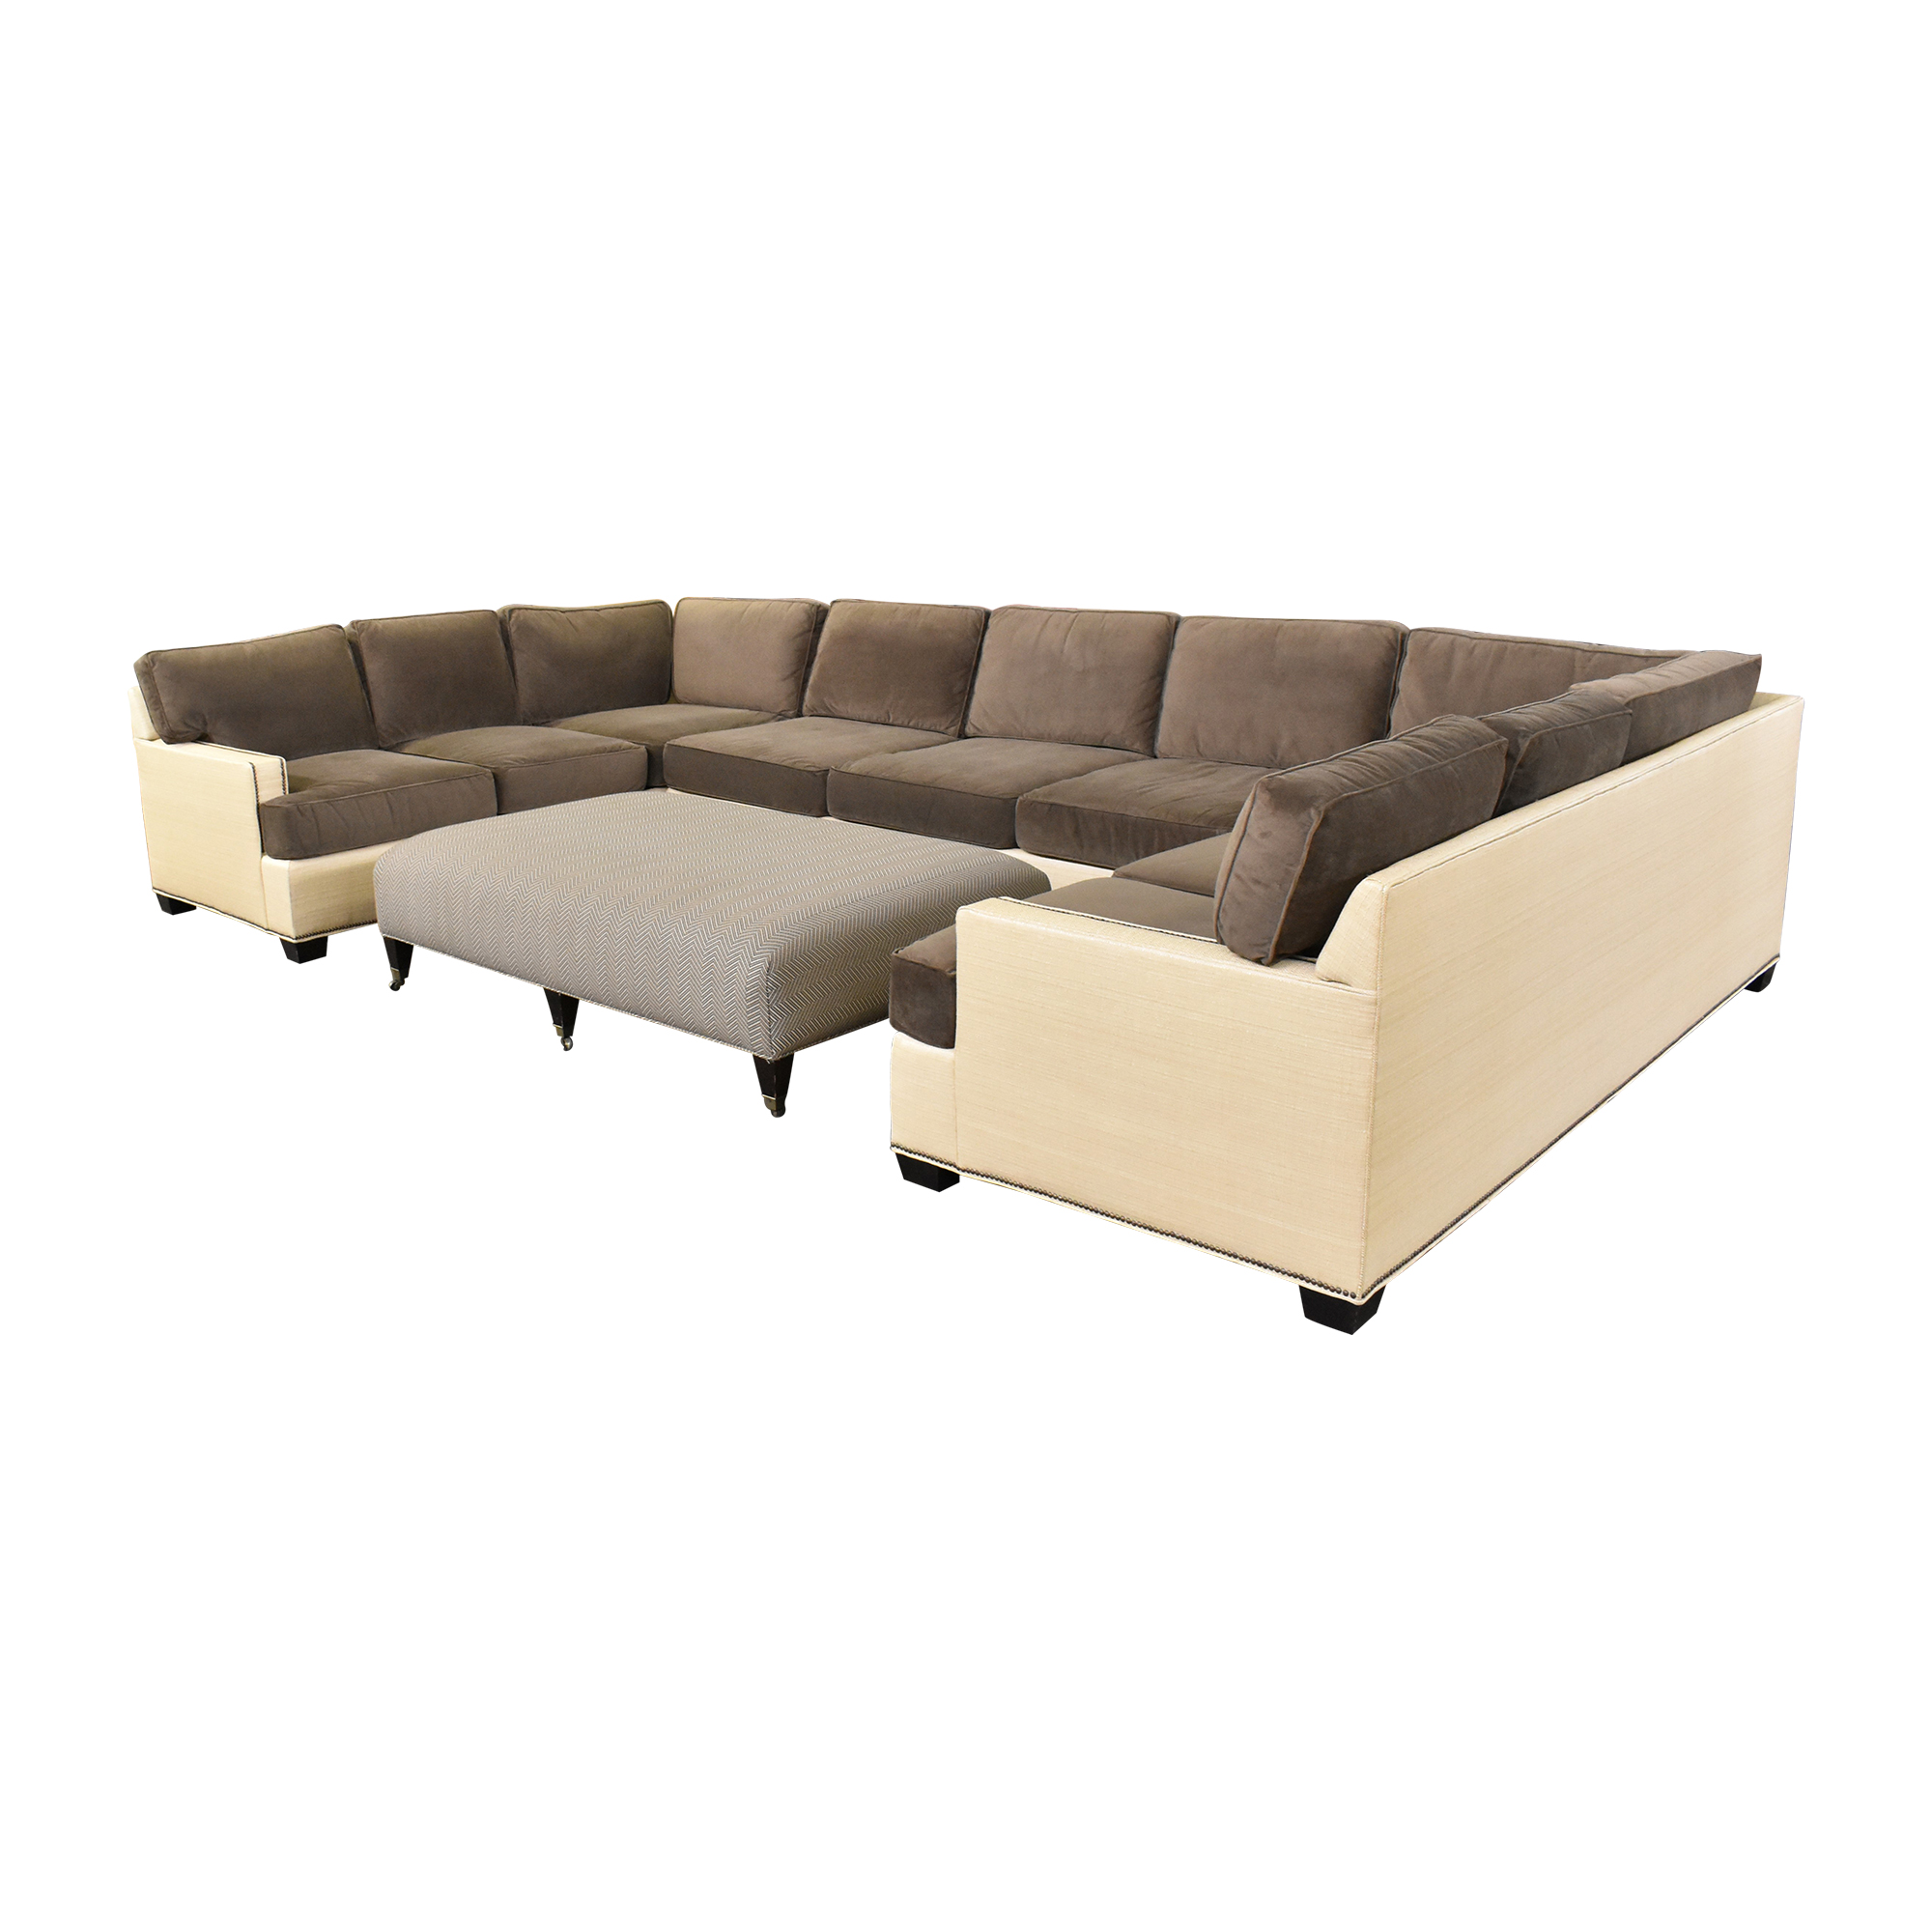 Two Tone U Sectional with Ottoman price